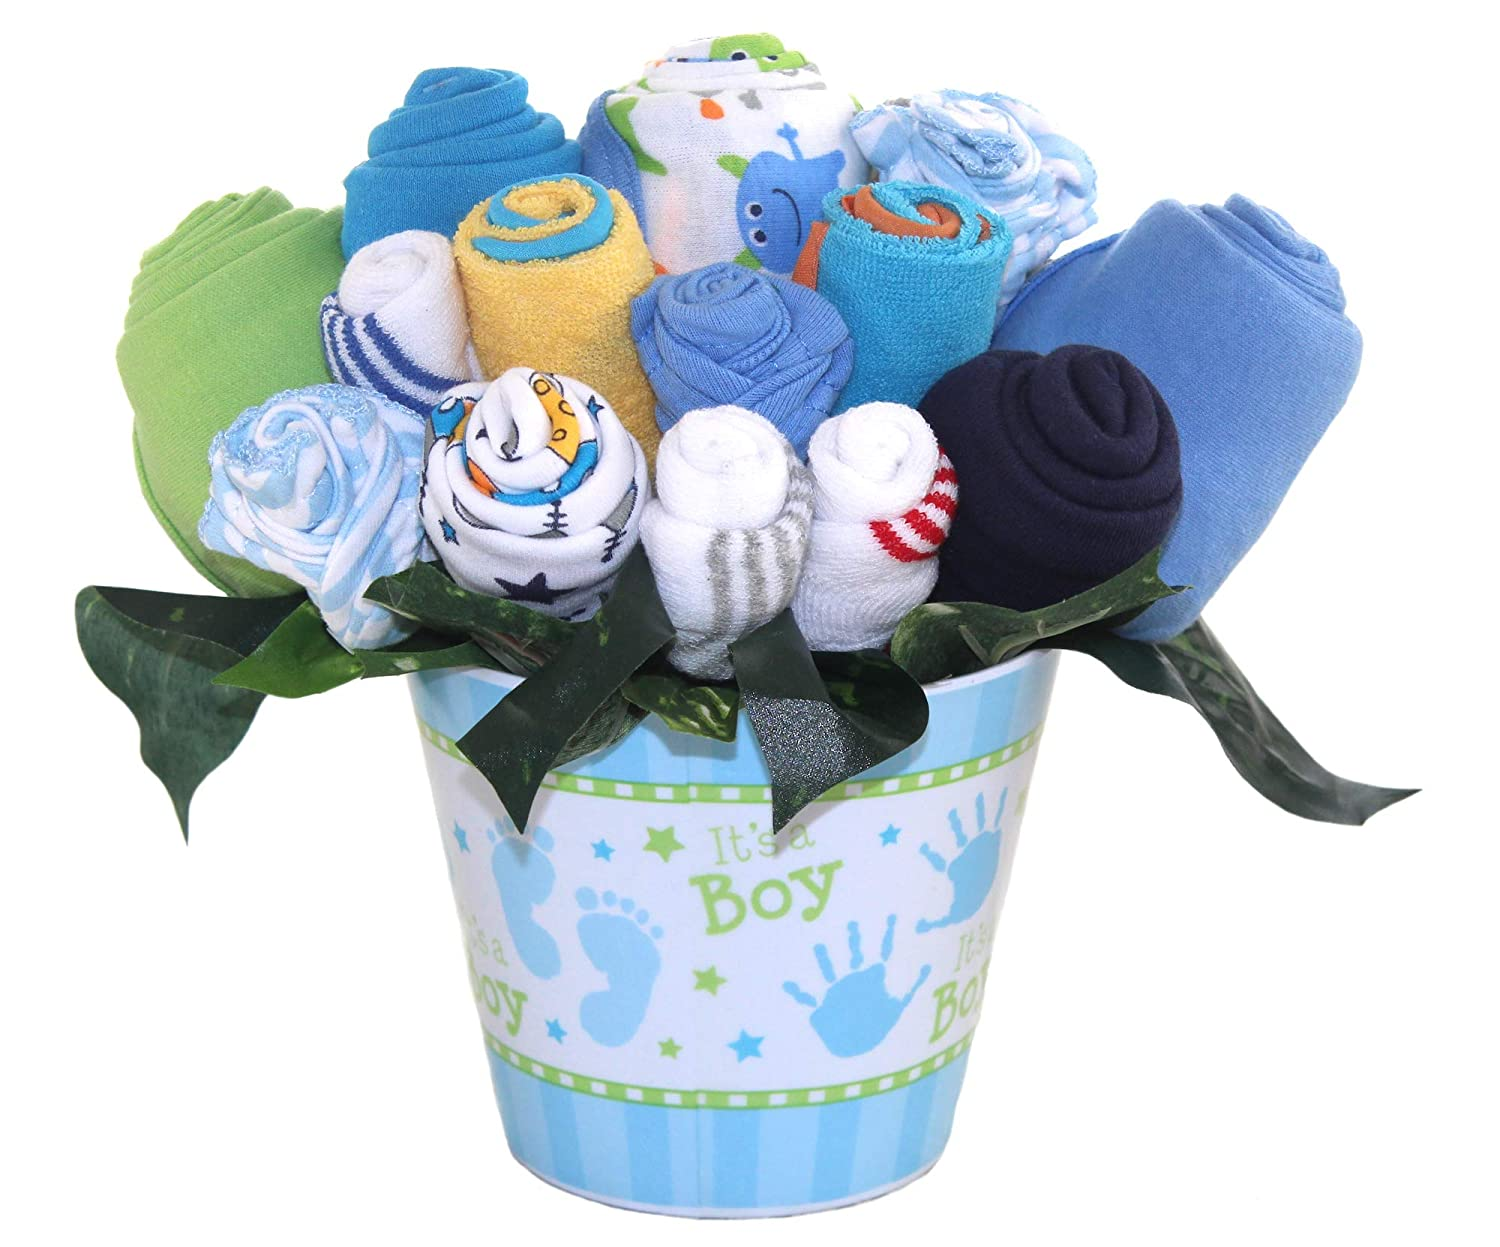 Baby Bouquet Made With Baby Clothes And Accessories Baby Shower Gift Practical Newborn Gift For Parents To Be New Baby Gift Idea Boys Blue Amazon In Baby